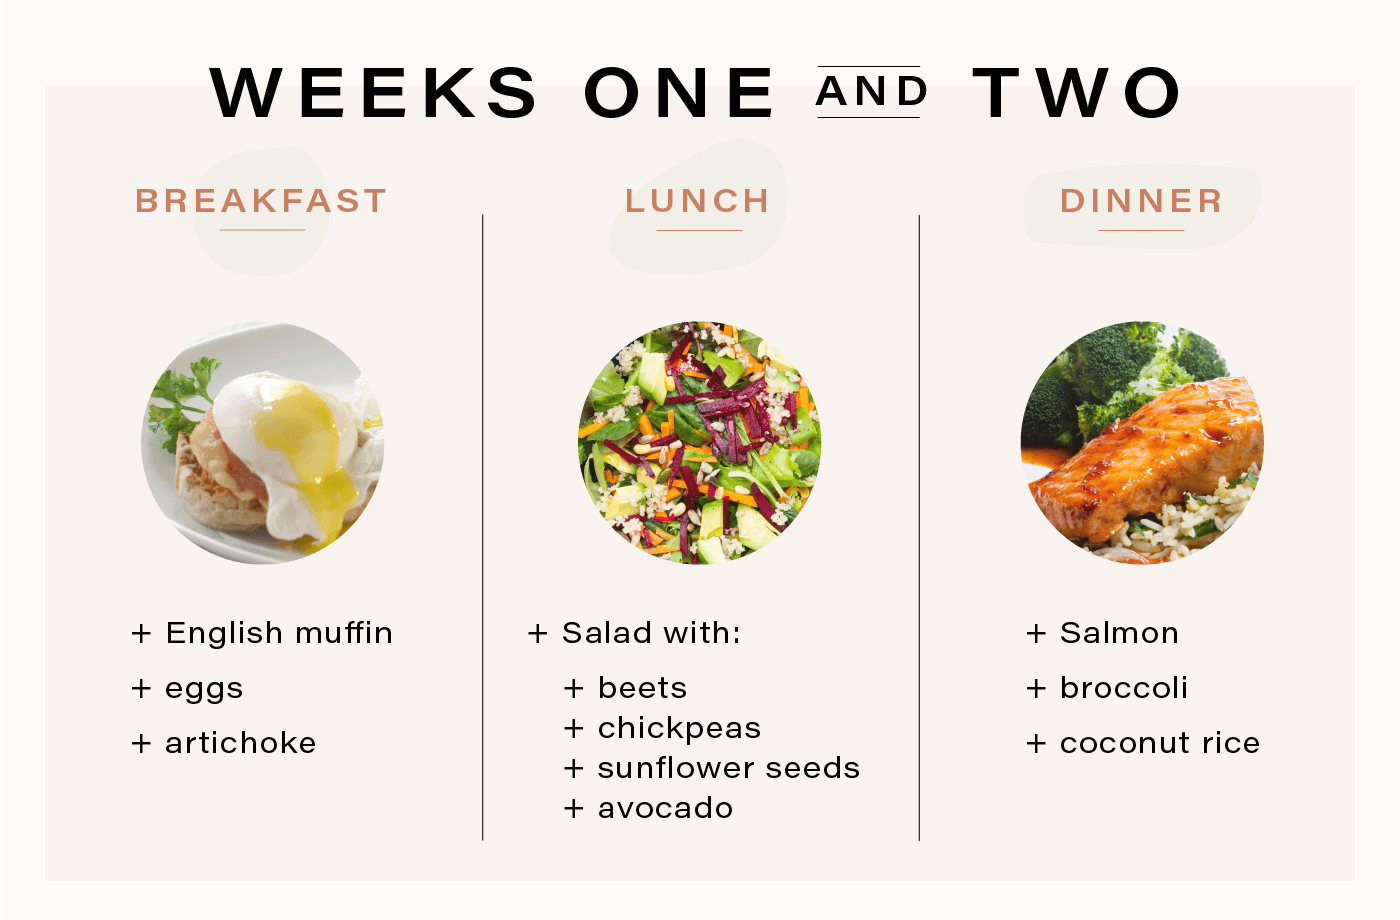 meal plan for runners weeks one and two